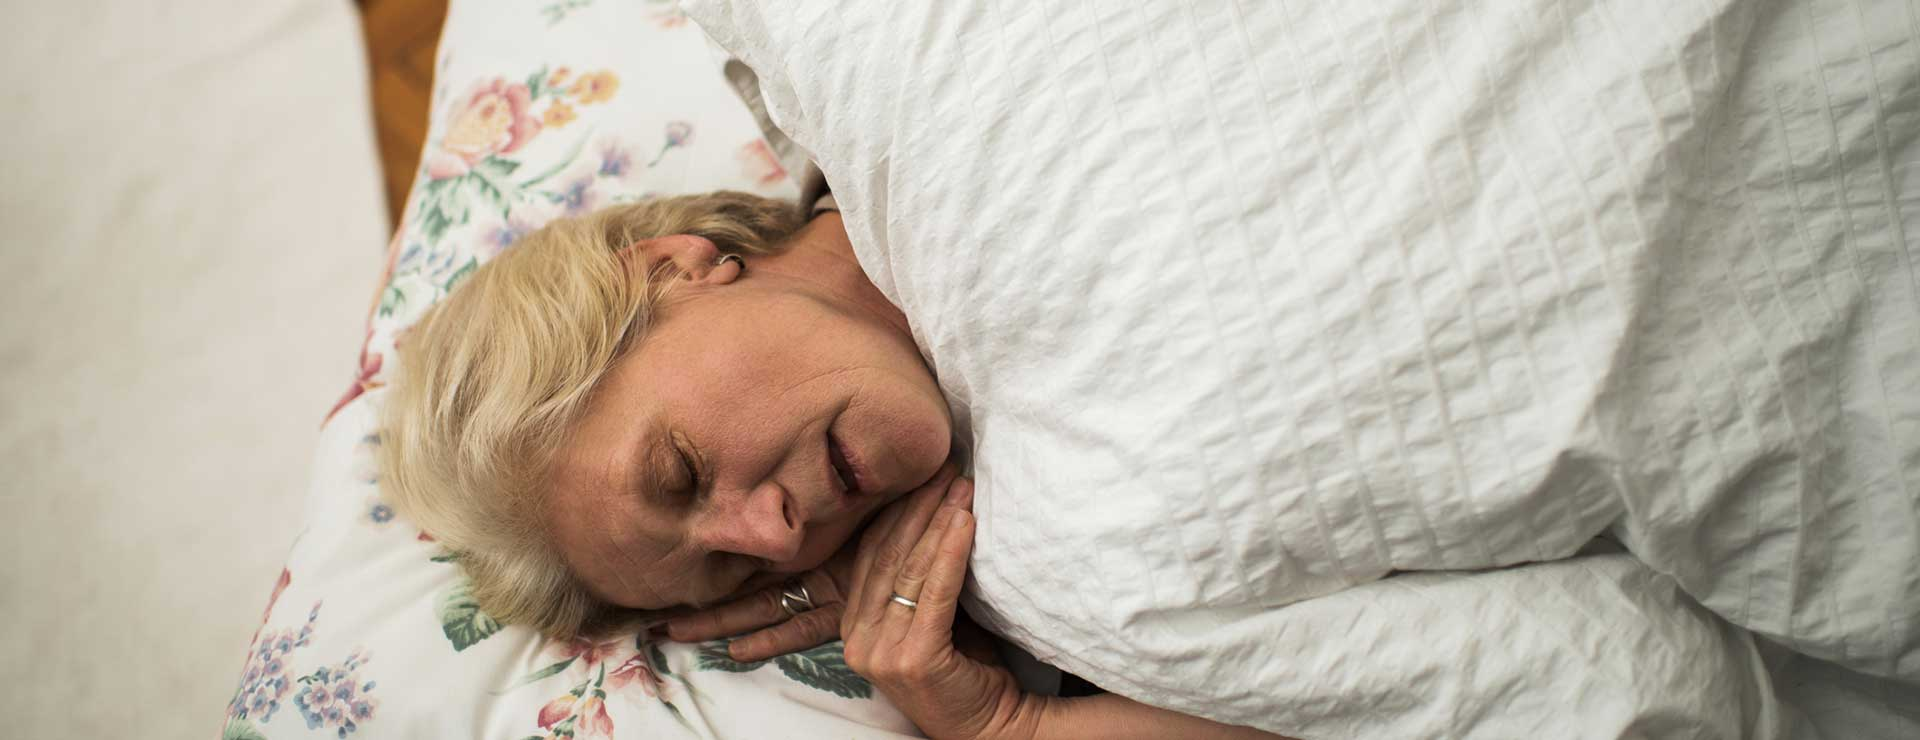 A senior woman sleeping with mouth open